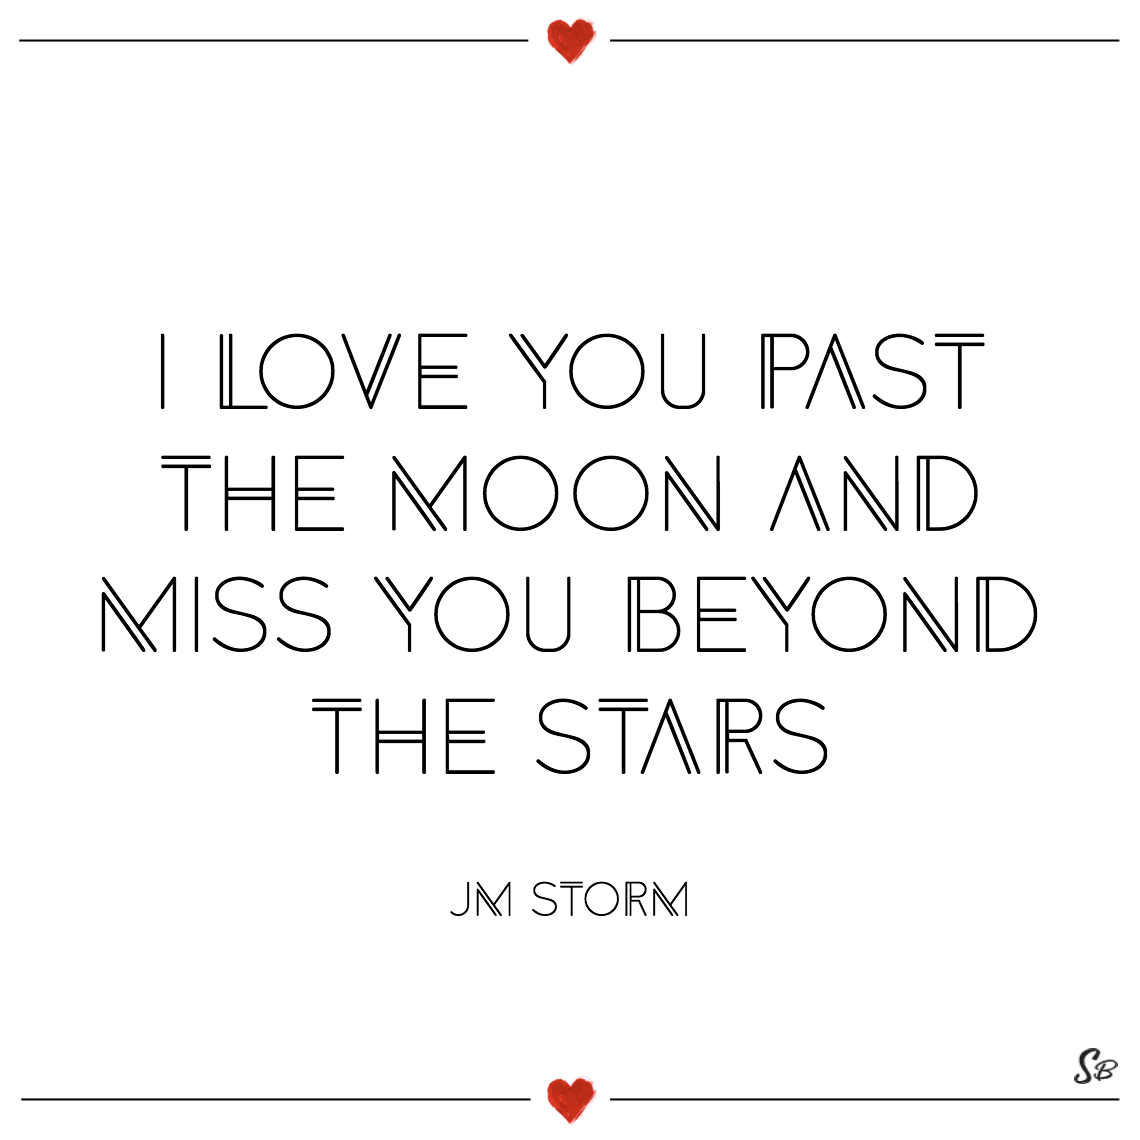 I love you past the moon and miss you beyond the stars jm storm